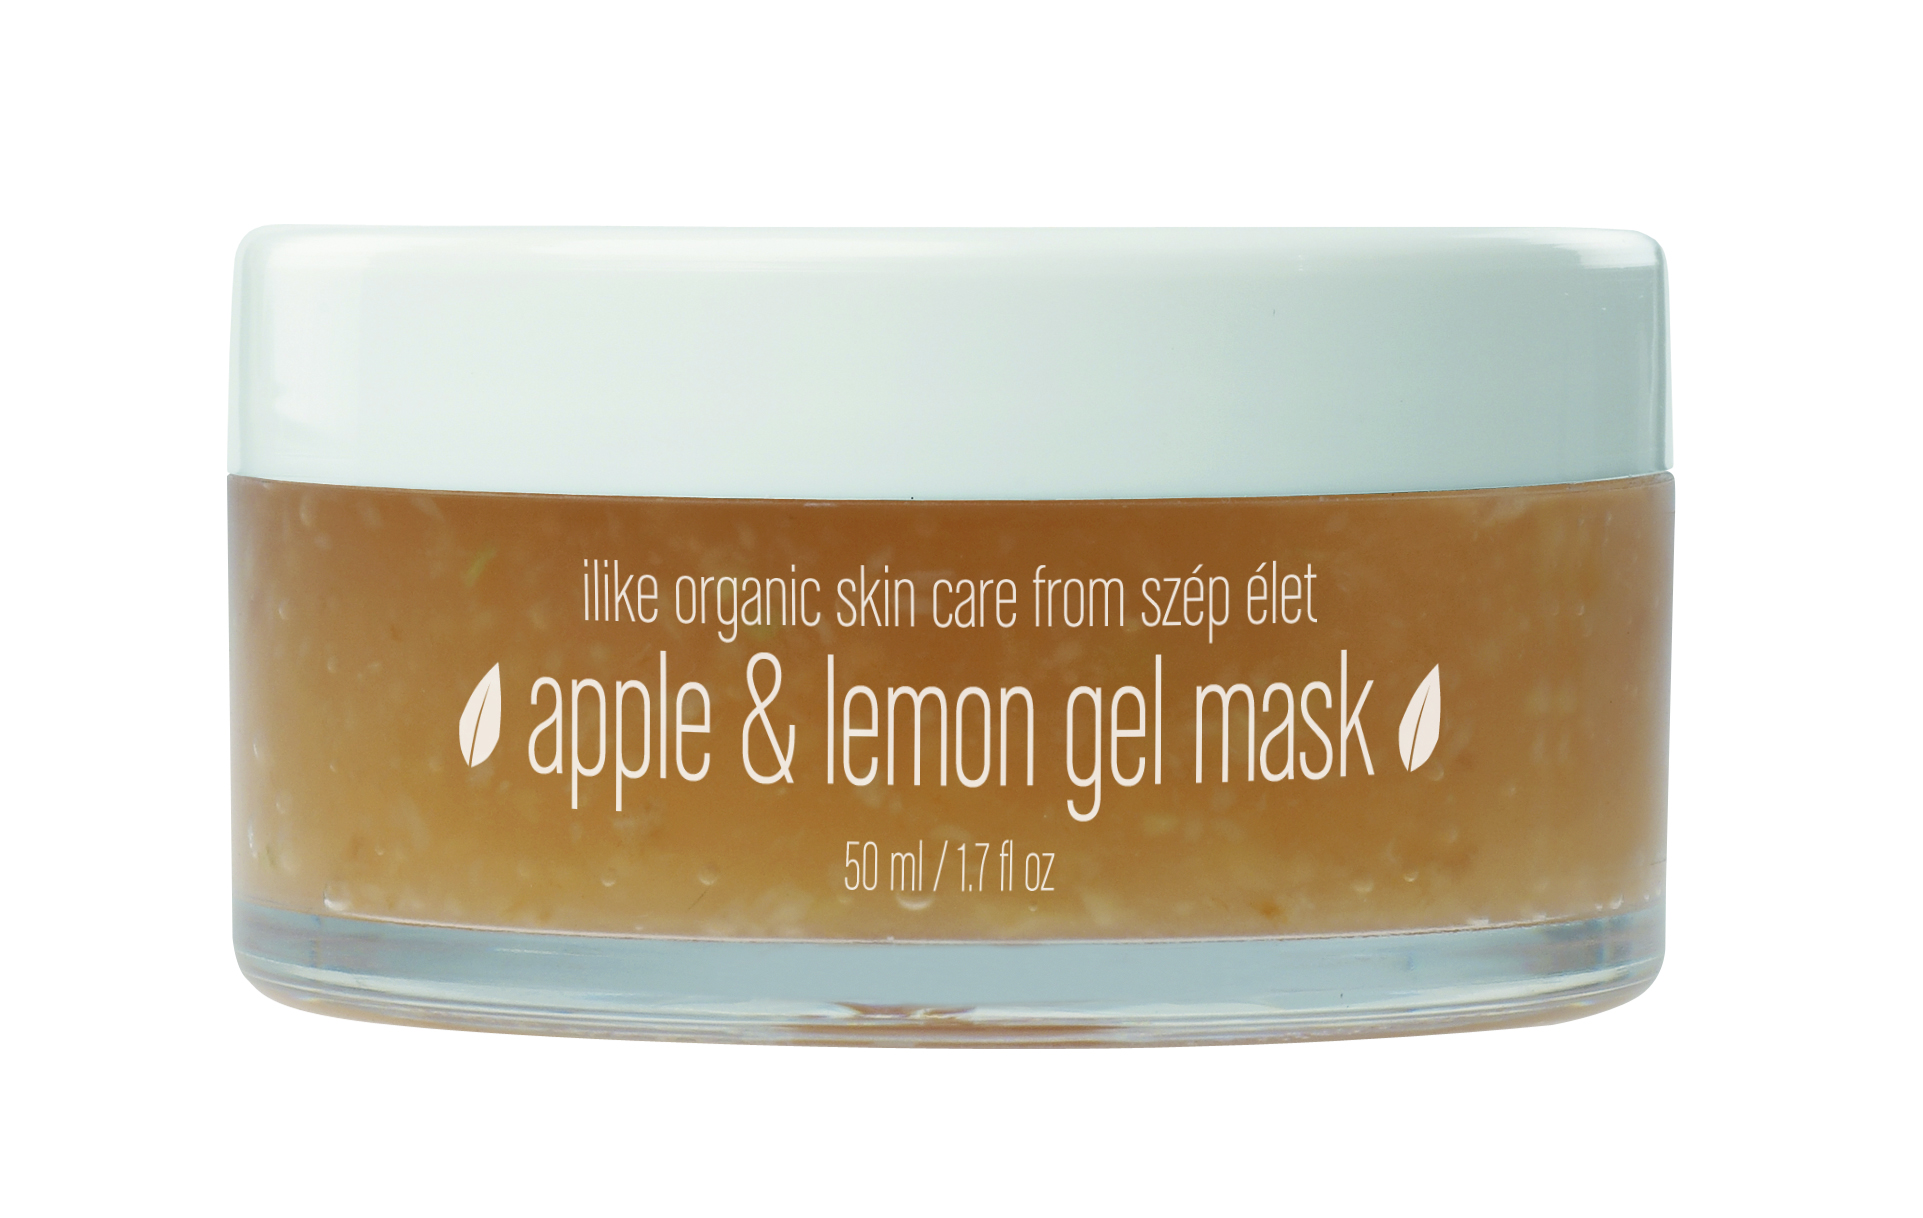 Apple_20_26_20lemon_20gel_20mask_original